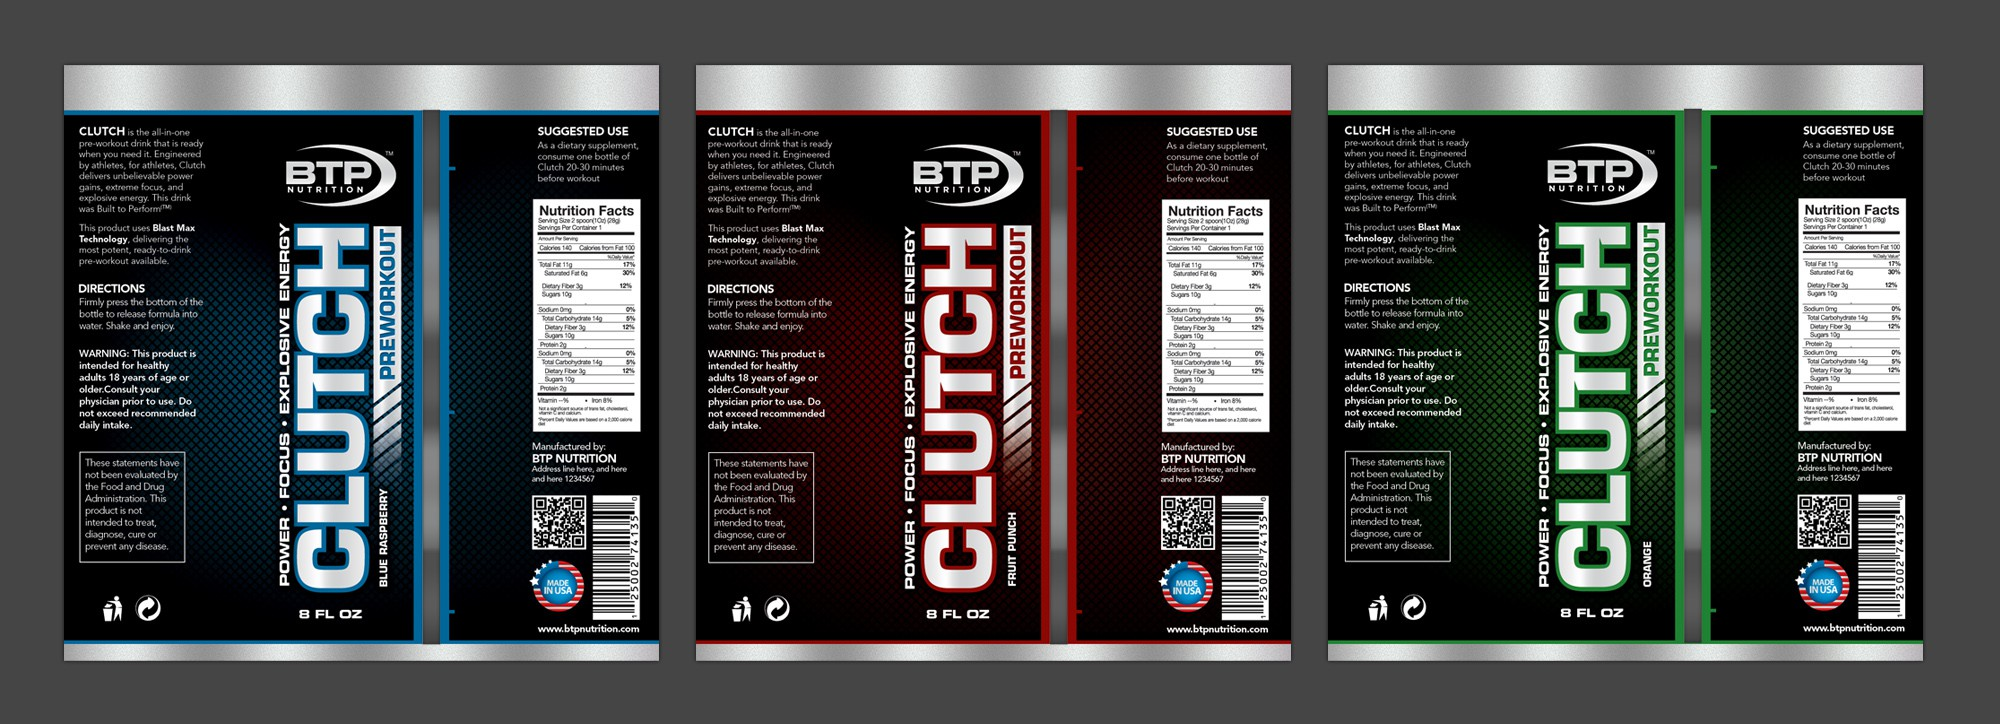 Help BTP Nutrition ™ with a new product label